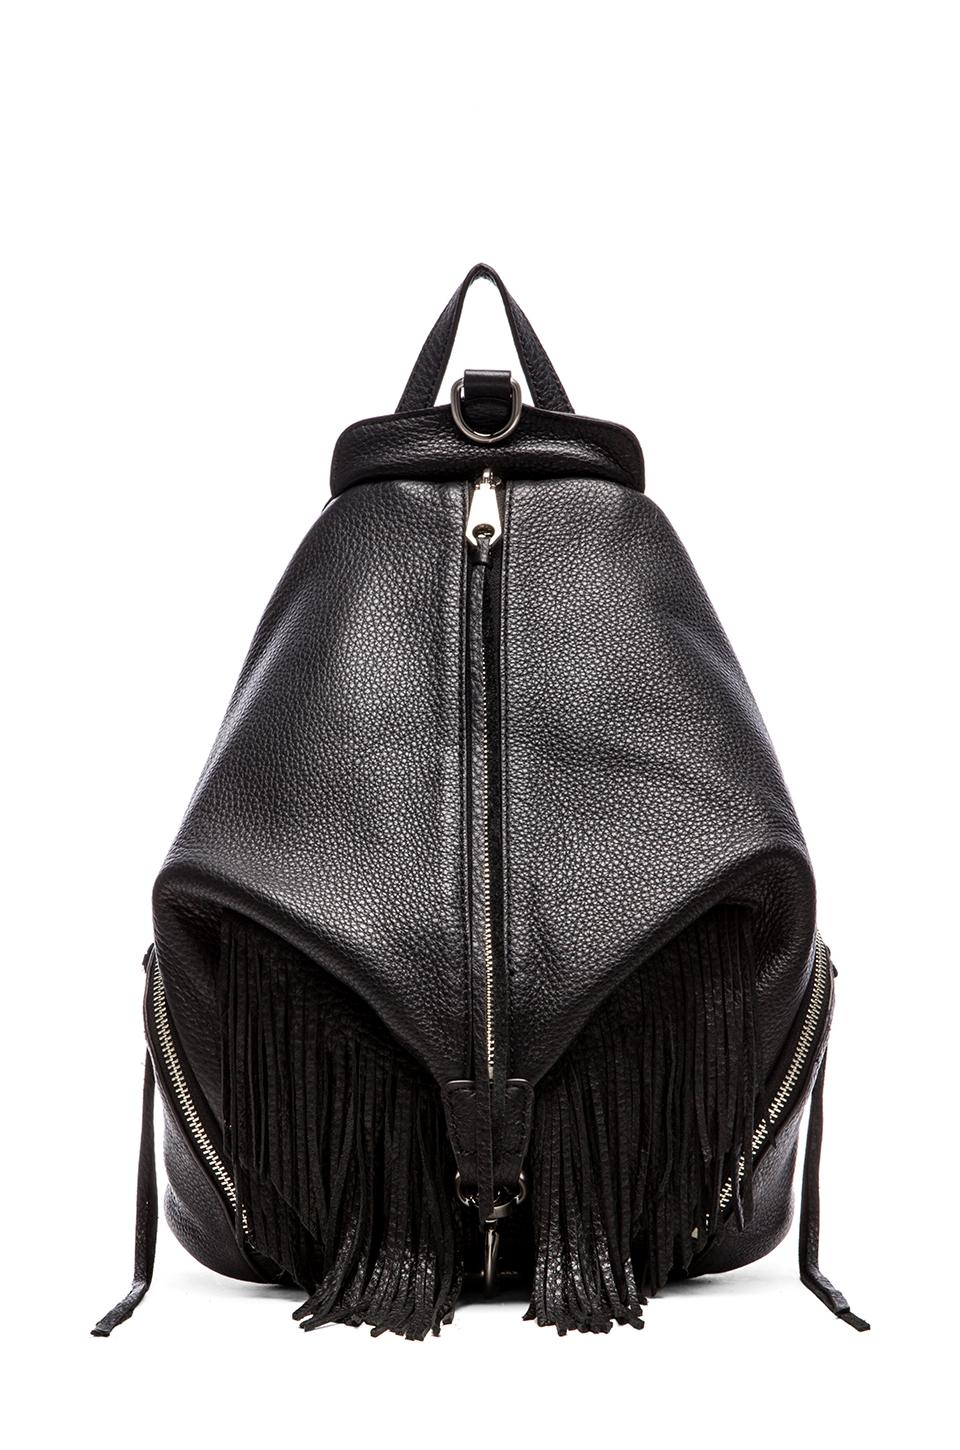 Rebecca Minkoff Julian Backpack with Fringe in Black